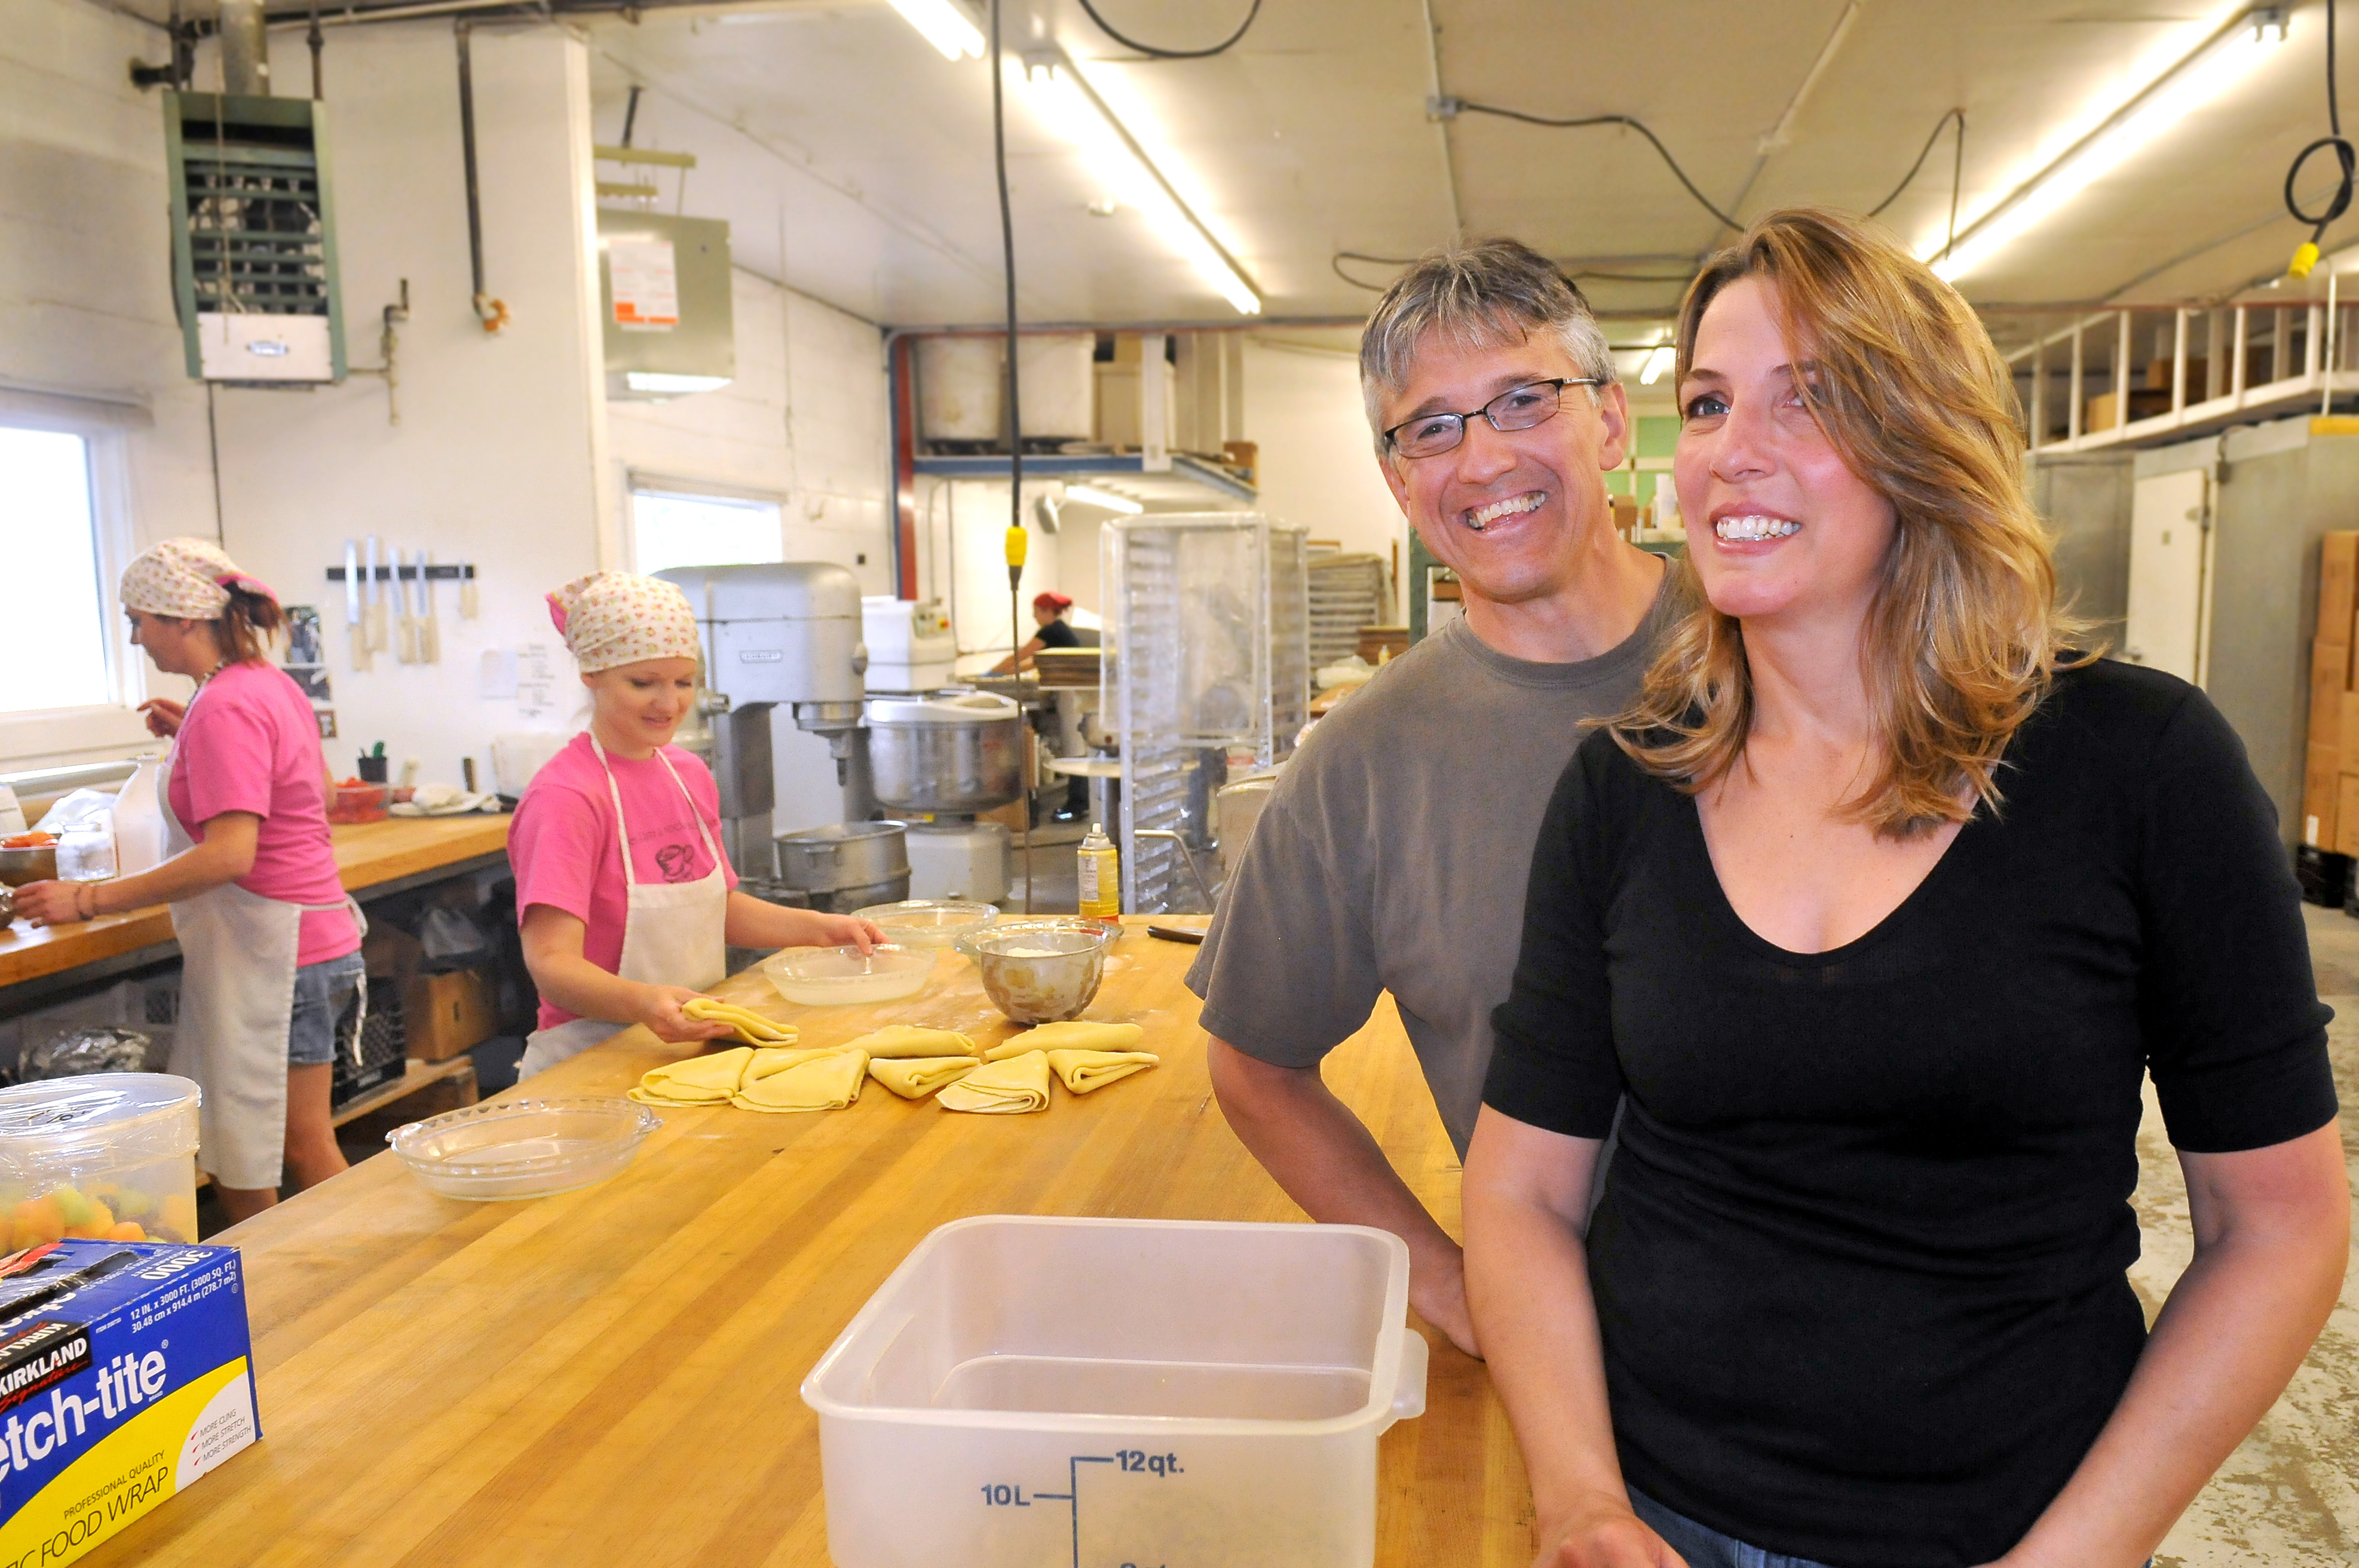 ede8fb0f21d Jeff and Julia Postlewait own and operate the Rocket Bakery and Rocket  Market stores from their